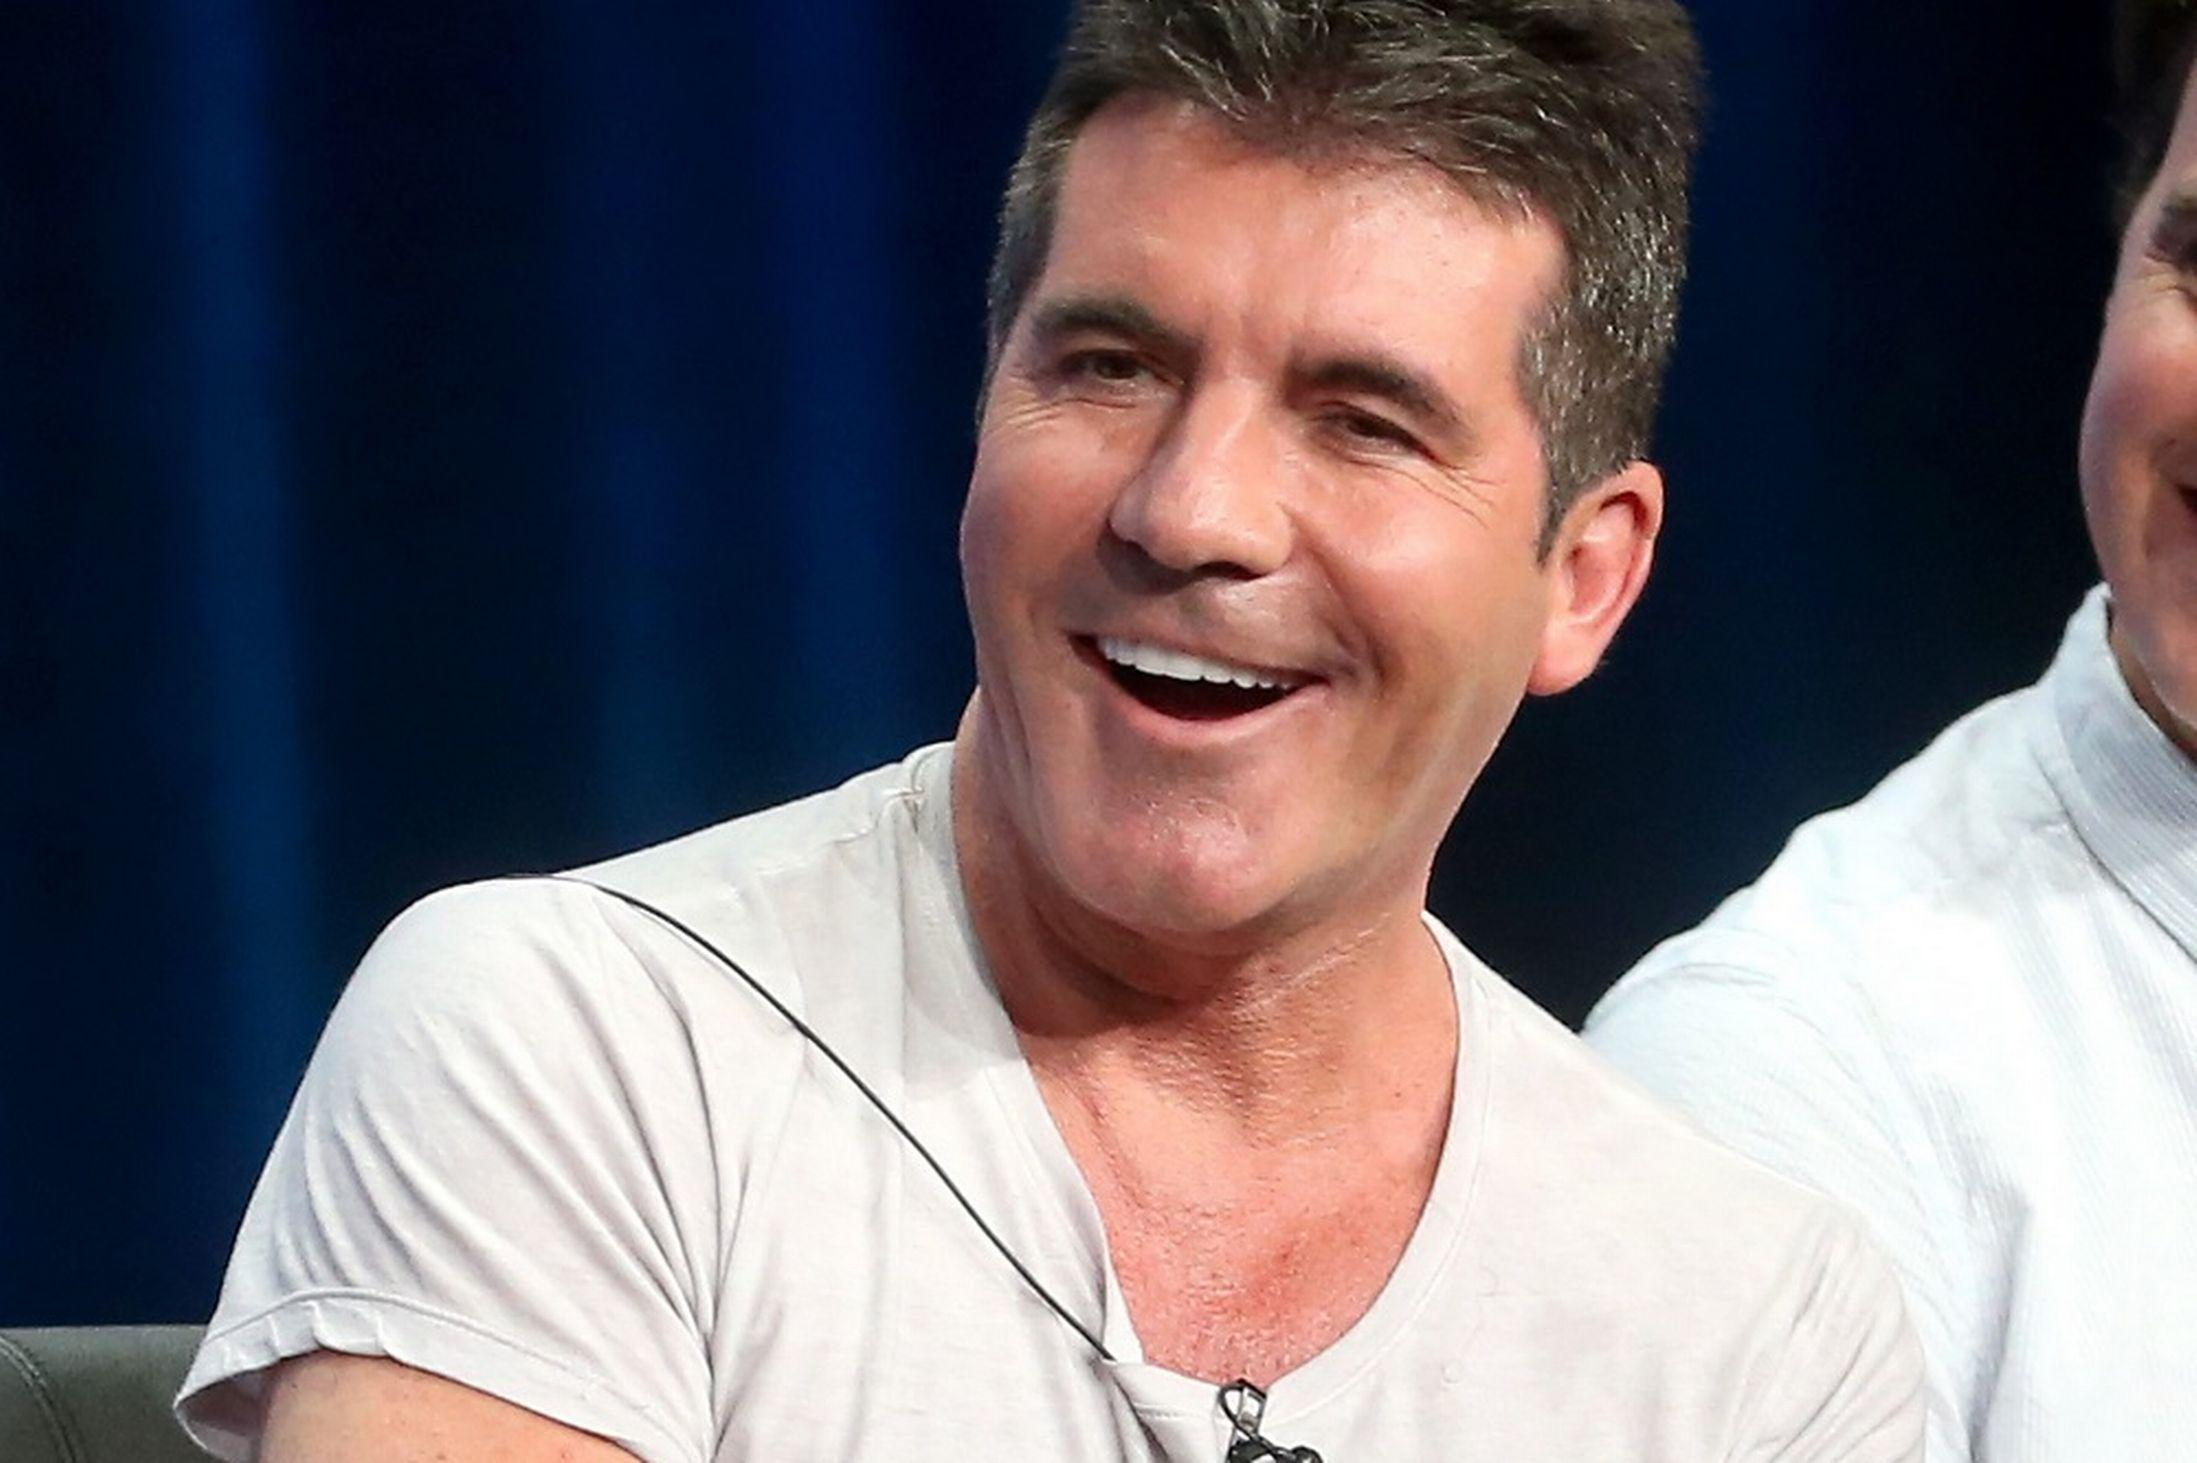 I don't mean to be rude but... The Simon Cowell is the TV and